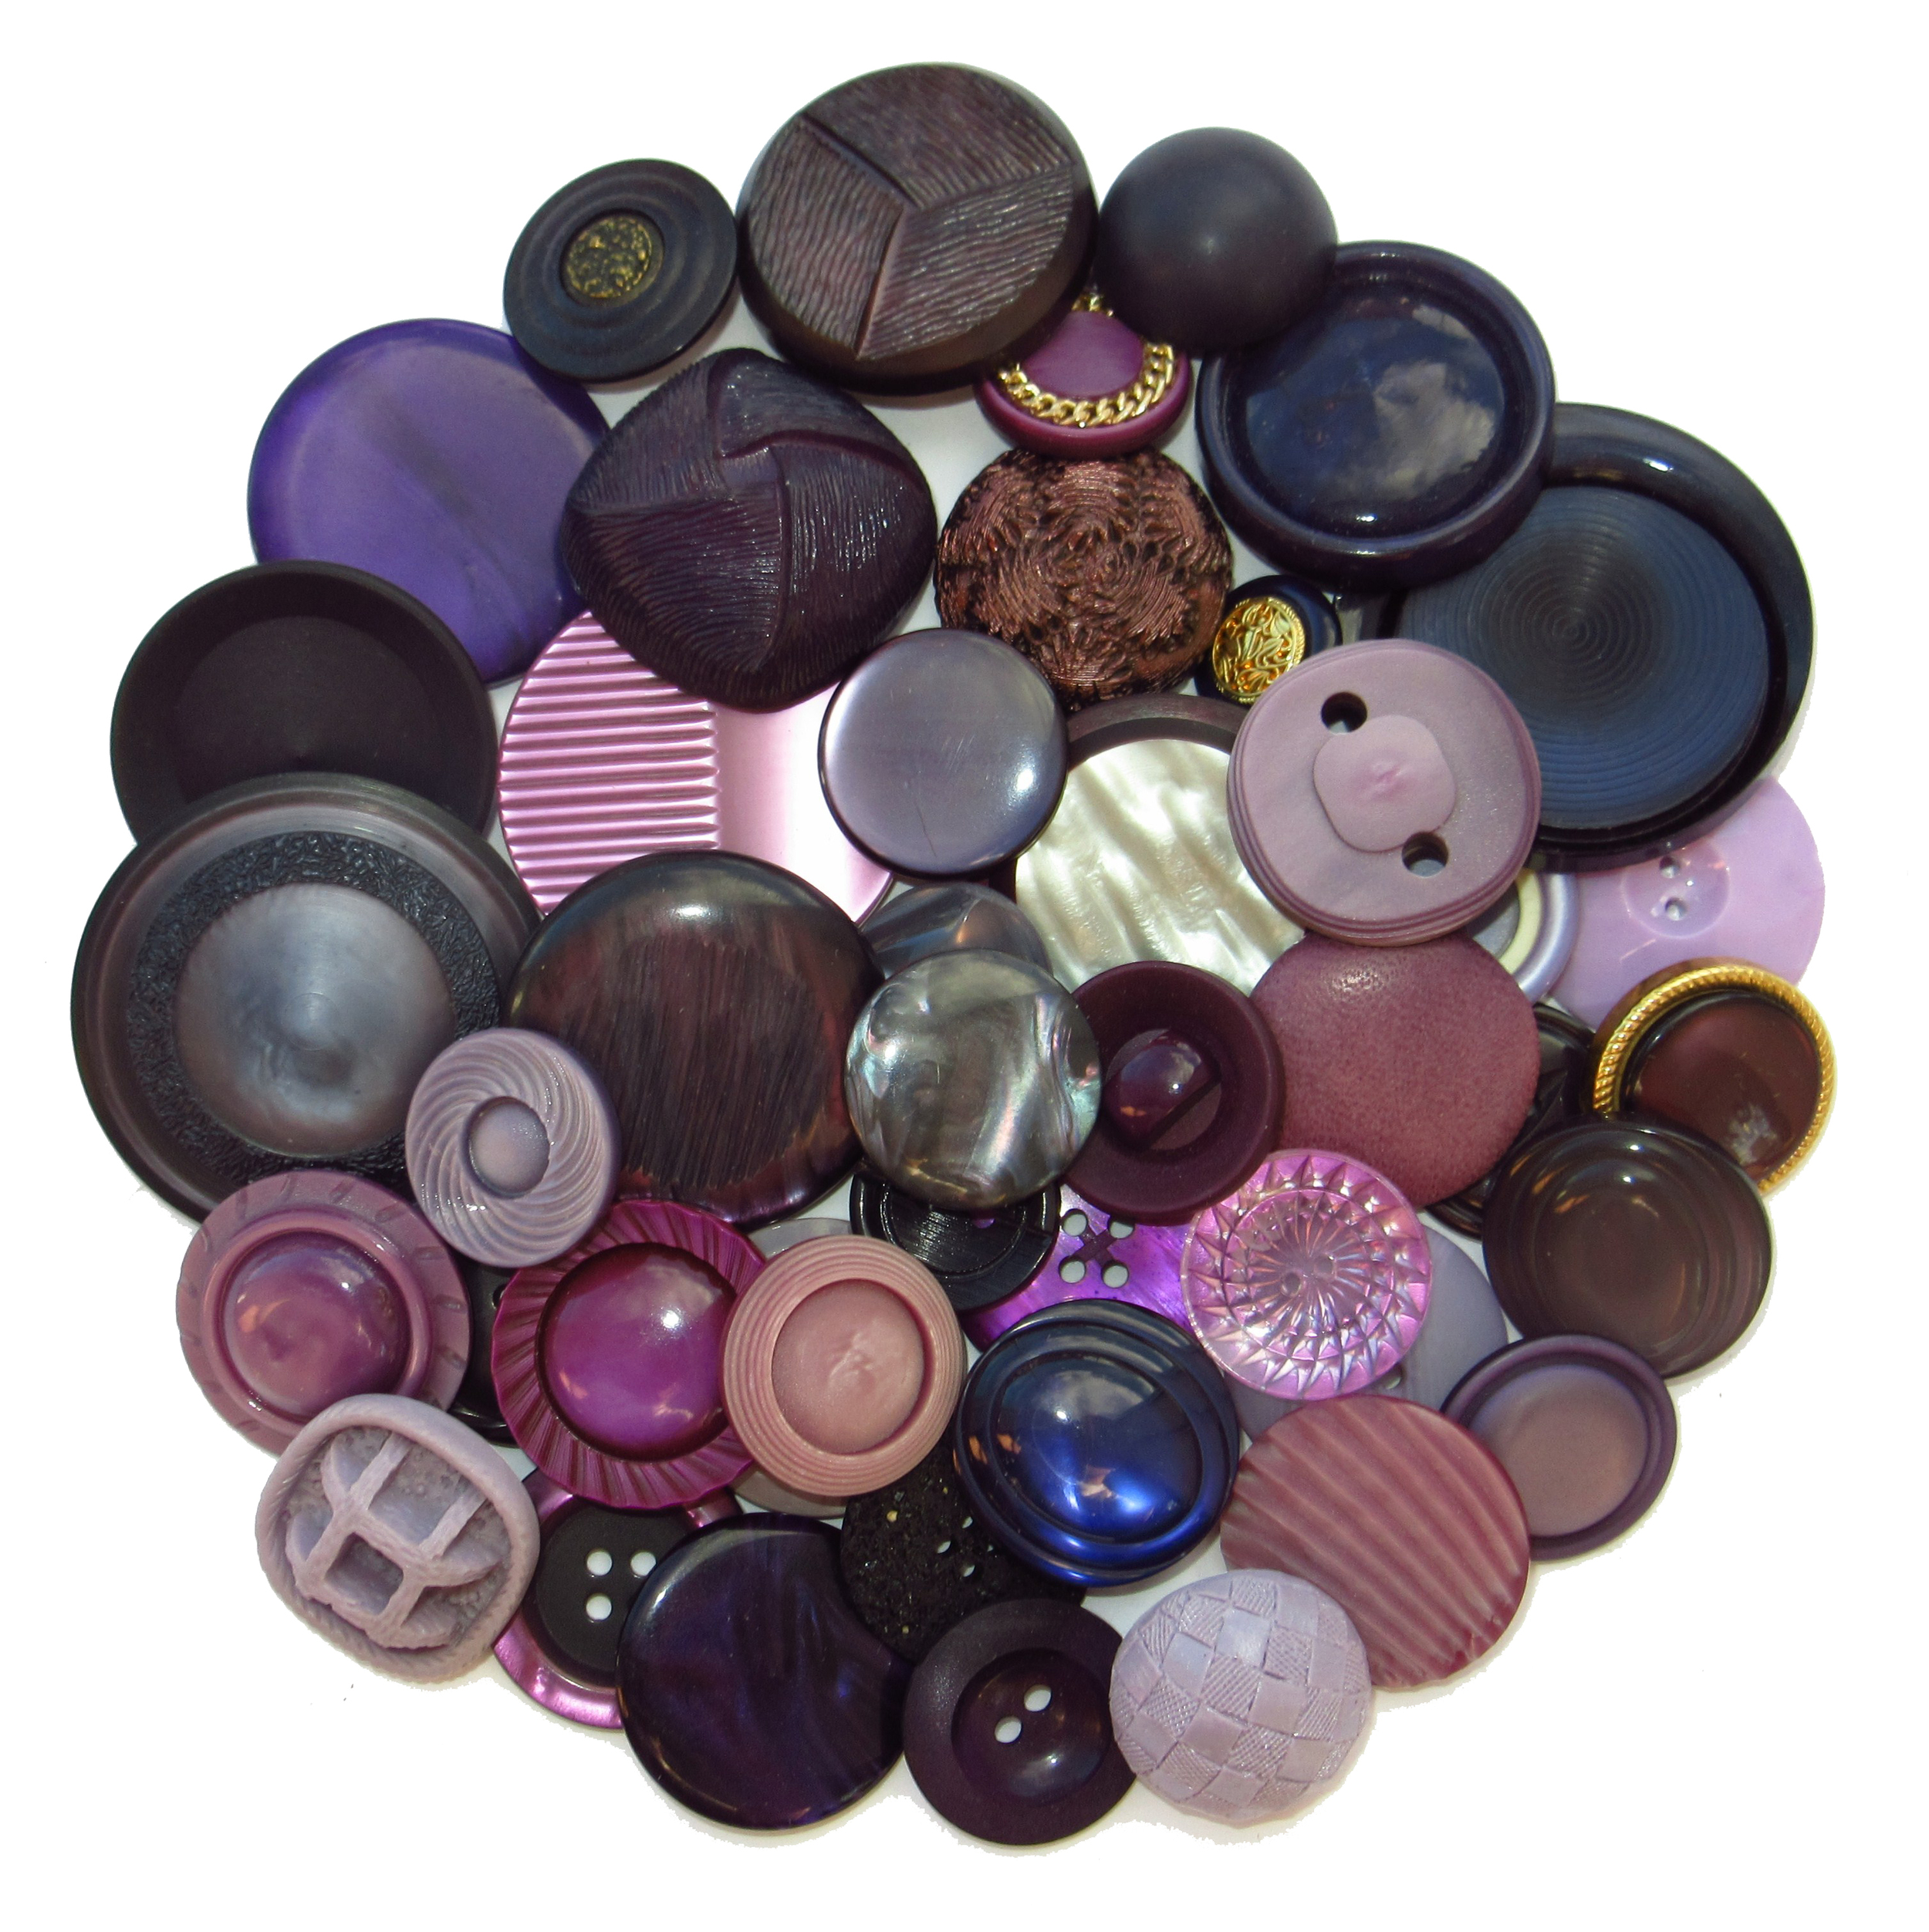 Boutons mauves